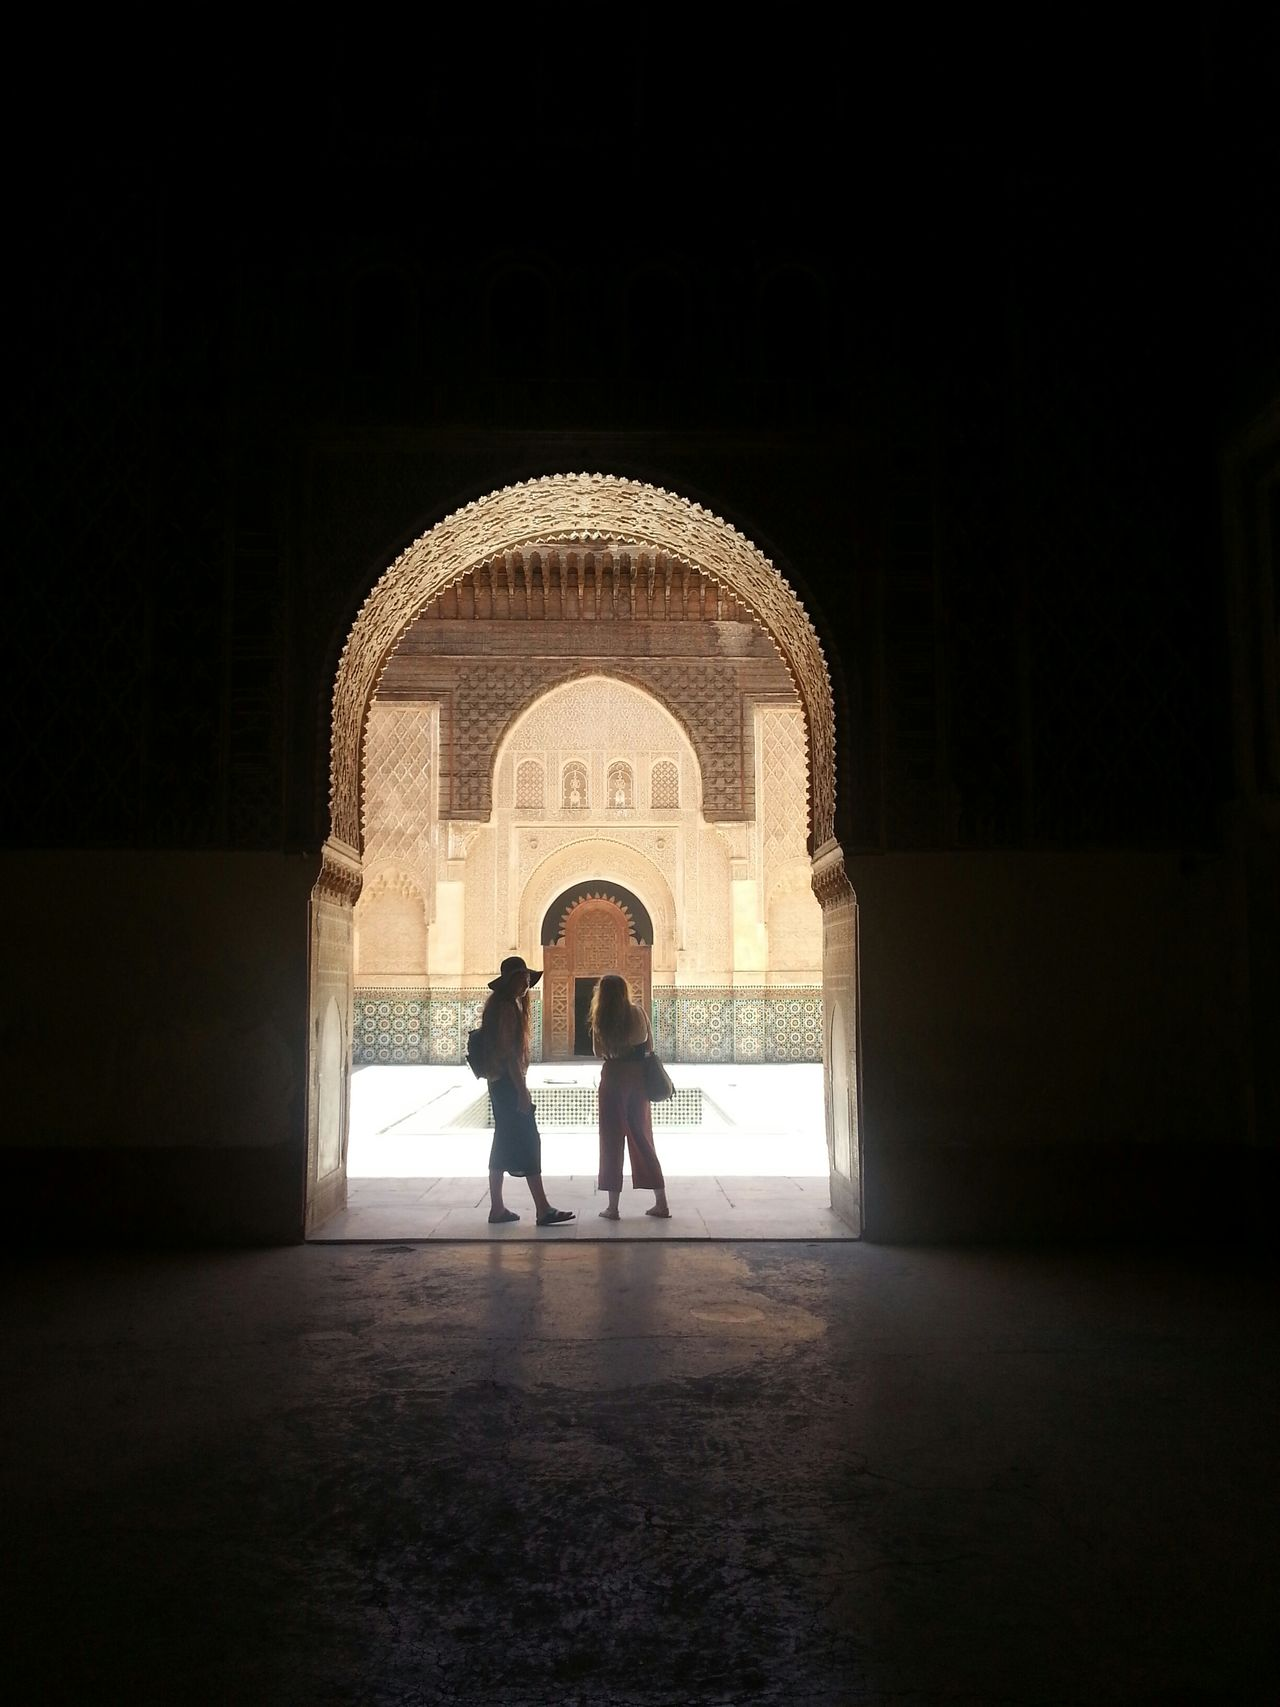 School Marrakech Sunlight Tourists Islamic Architecture Islam School